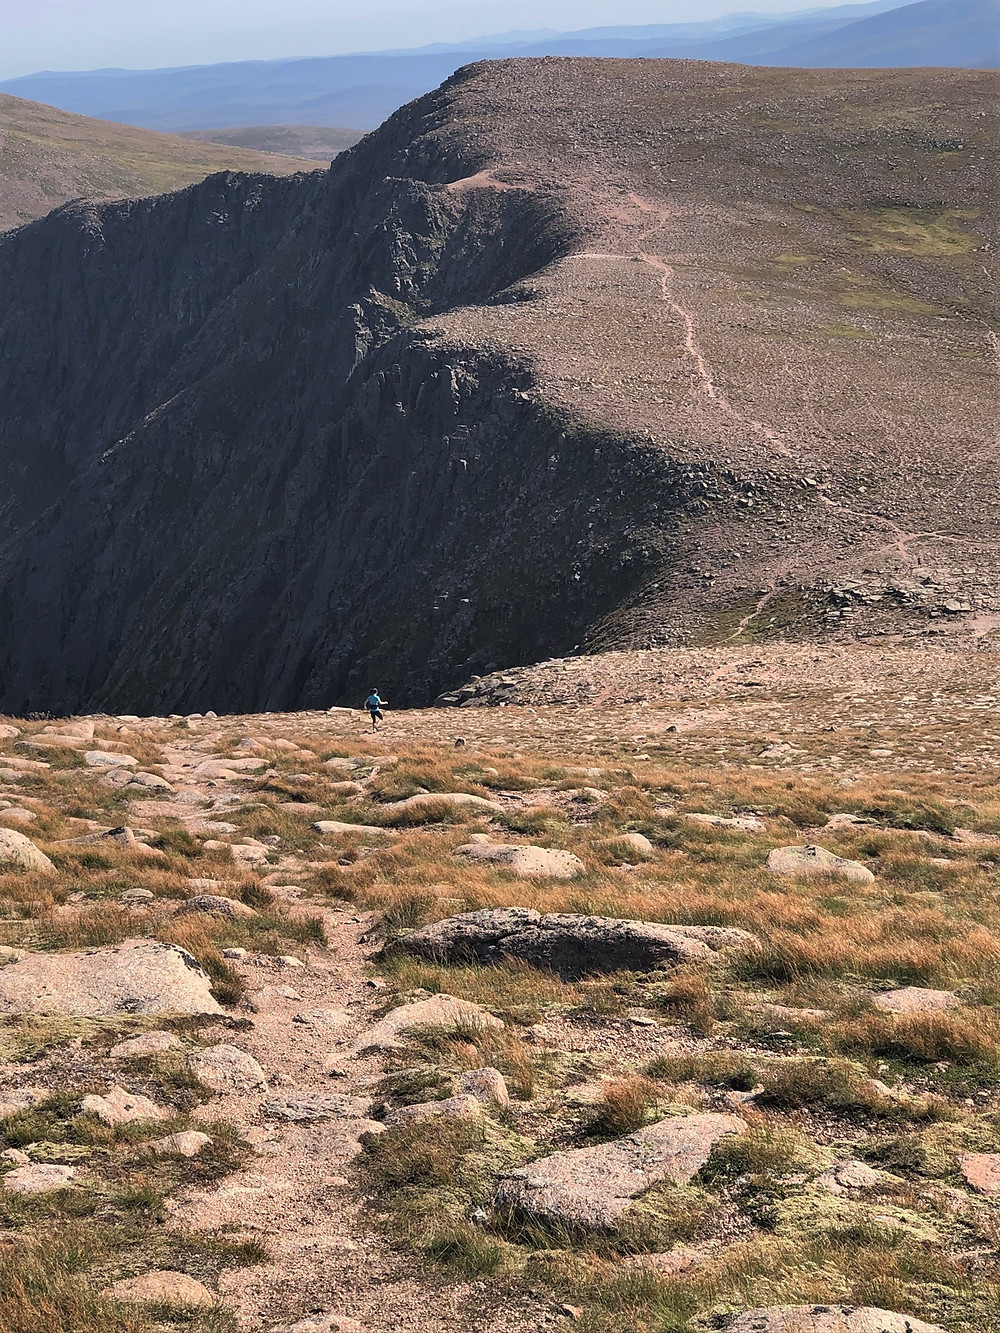 Approaching the climb up Stob Coire an t-Sneachda on the Cairn Gorm hike via the Northern Corries